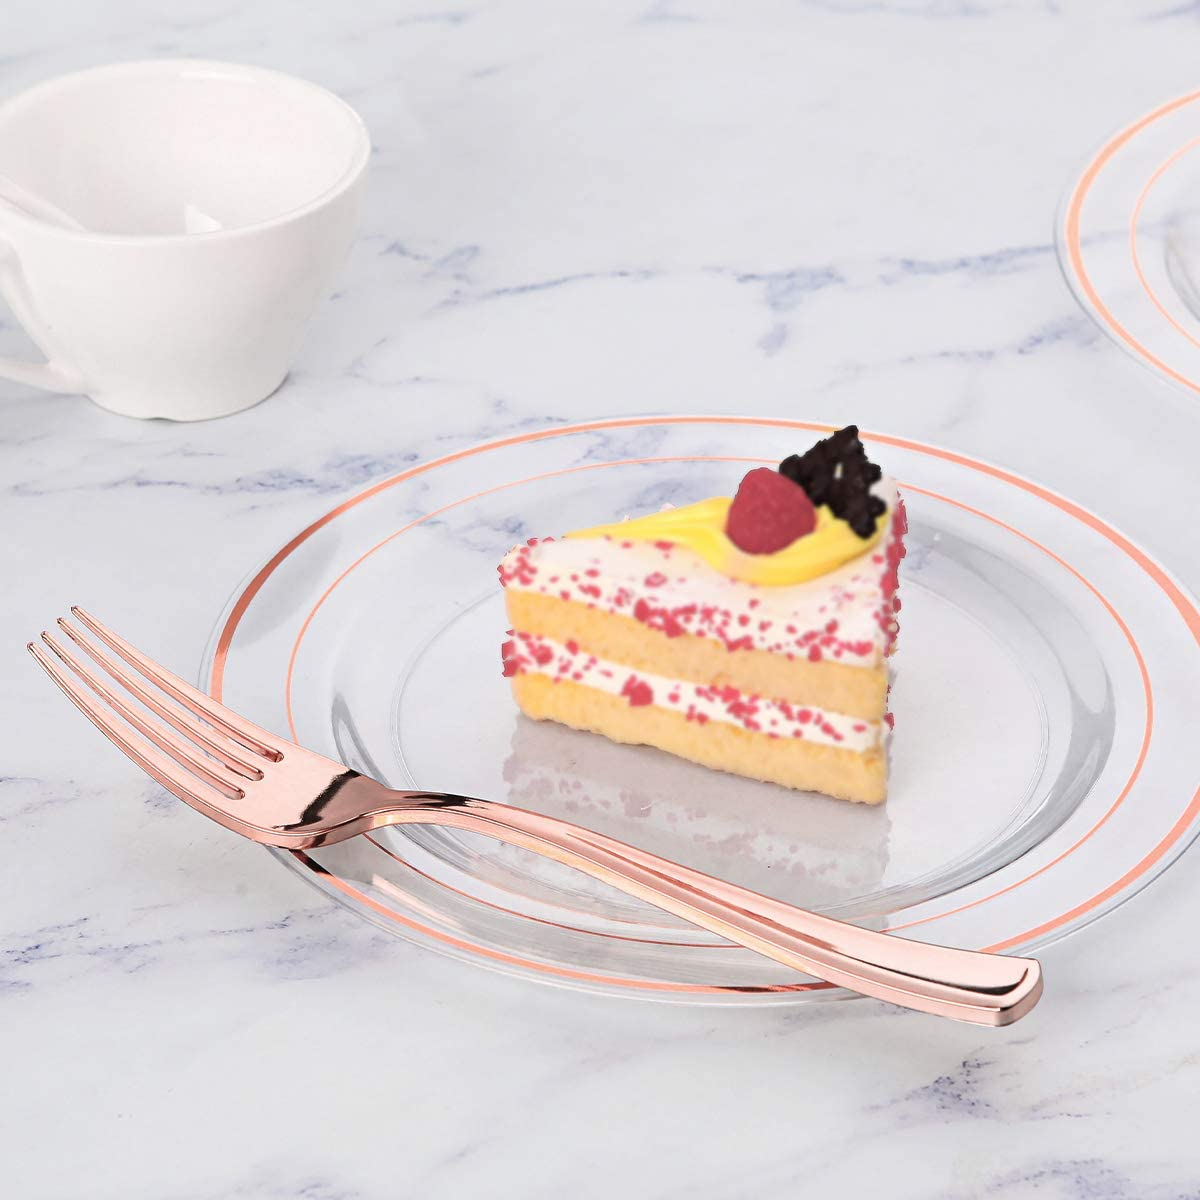 30 Dinner Plates 10.25 Inch and 30 Salad//Dessert Plates 7.5 Inch Clear Plastic Party Plates Premium Heavyweight Disposable Wedding Plates Includes Rose Gold Plates 60 Pieces